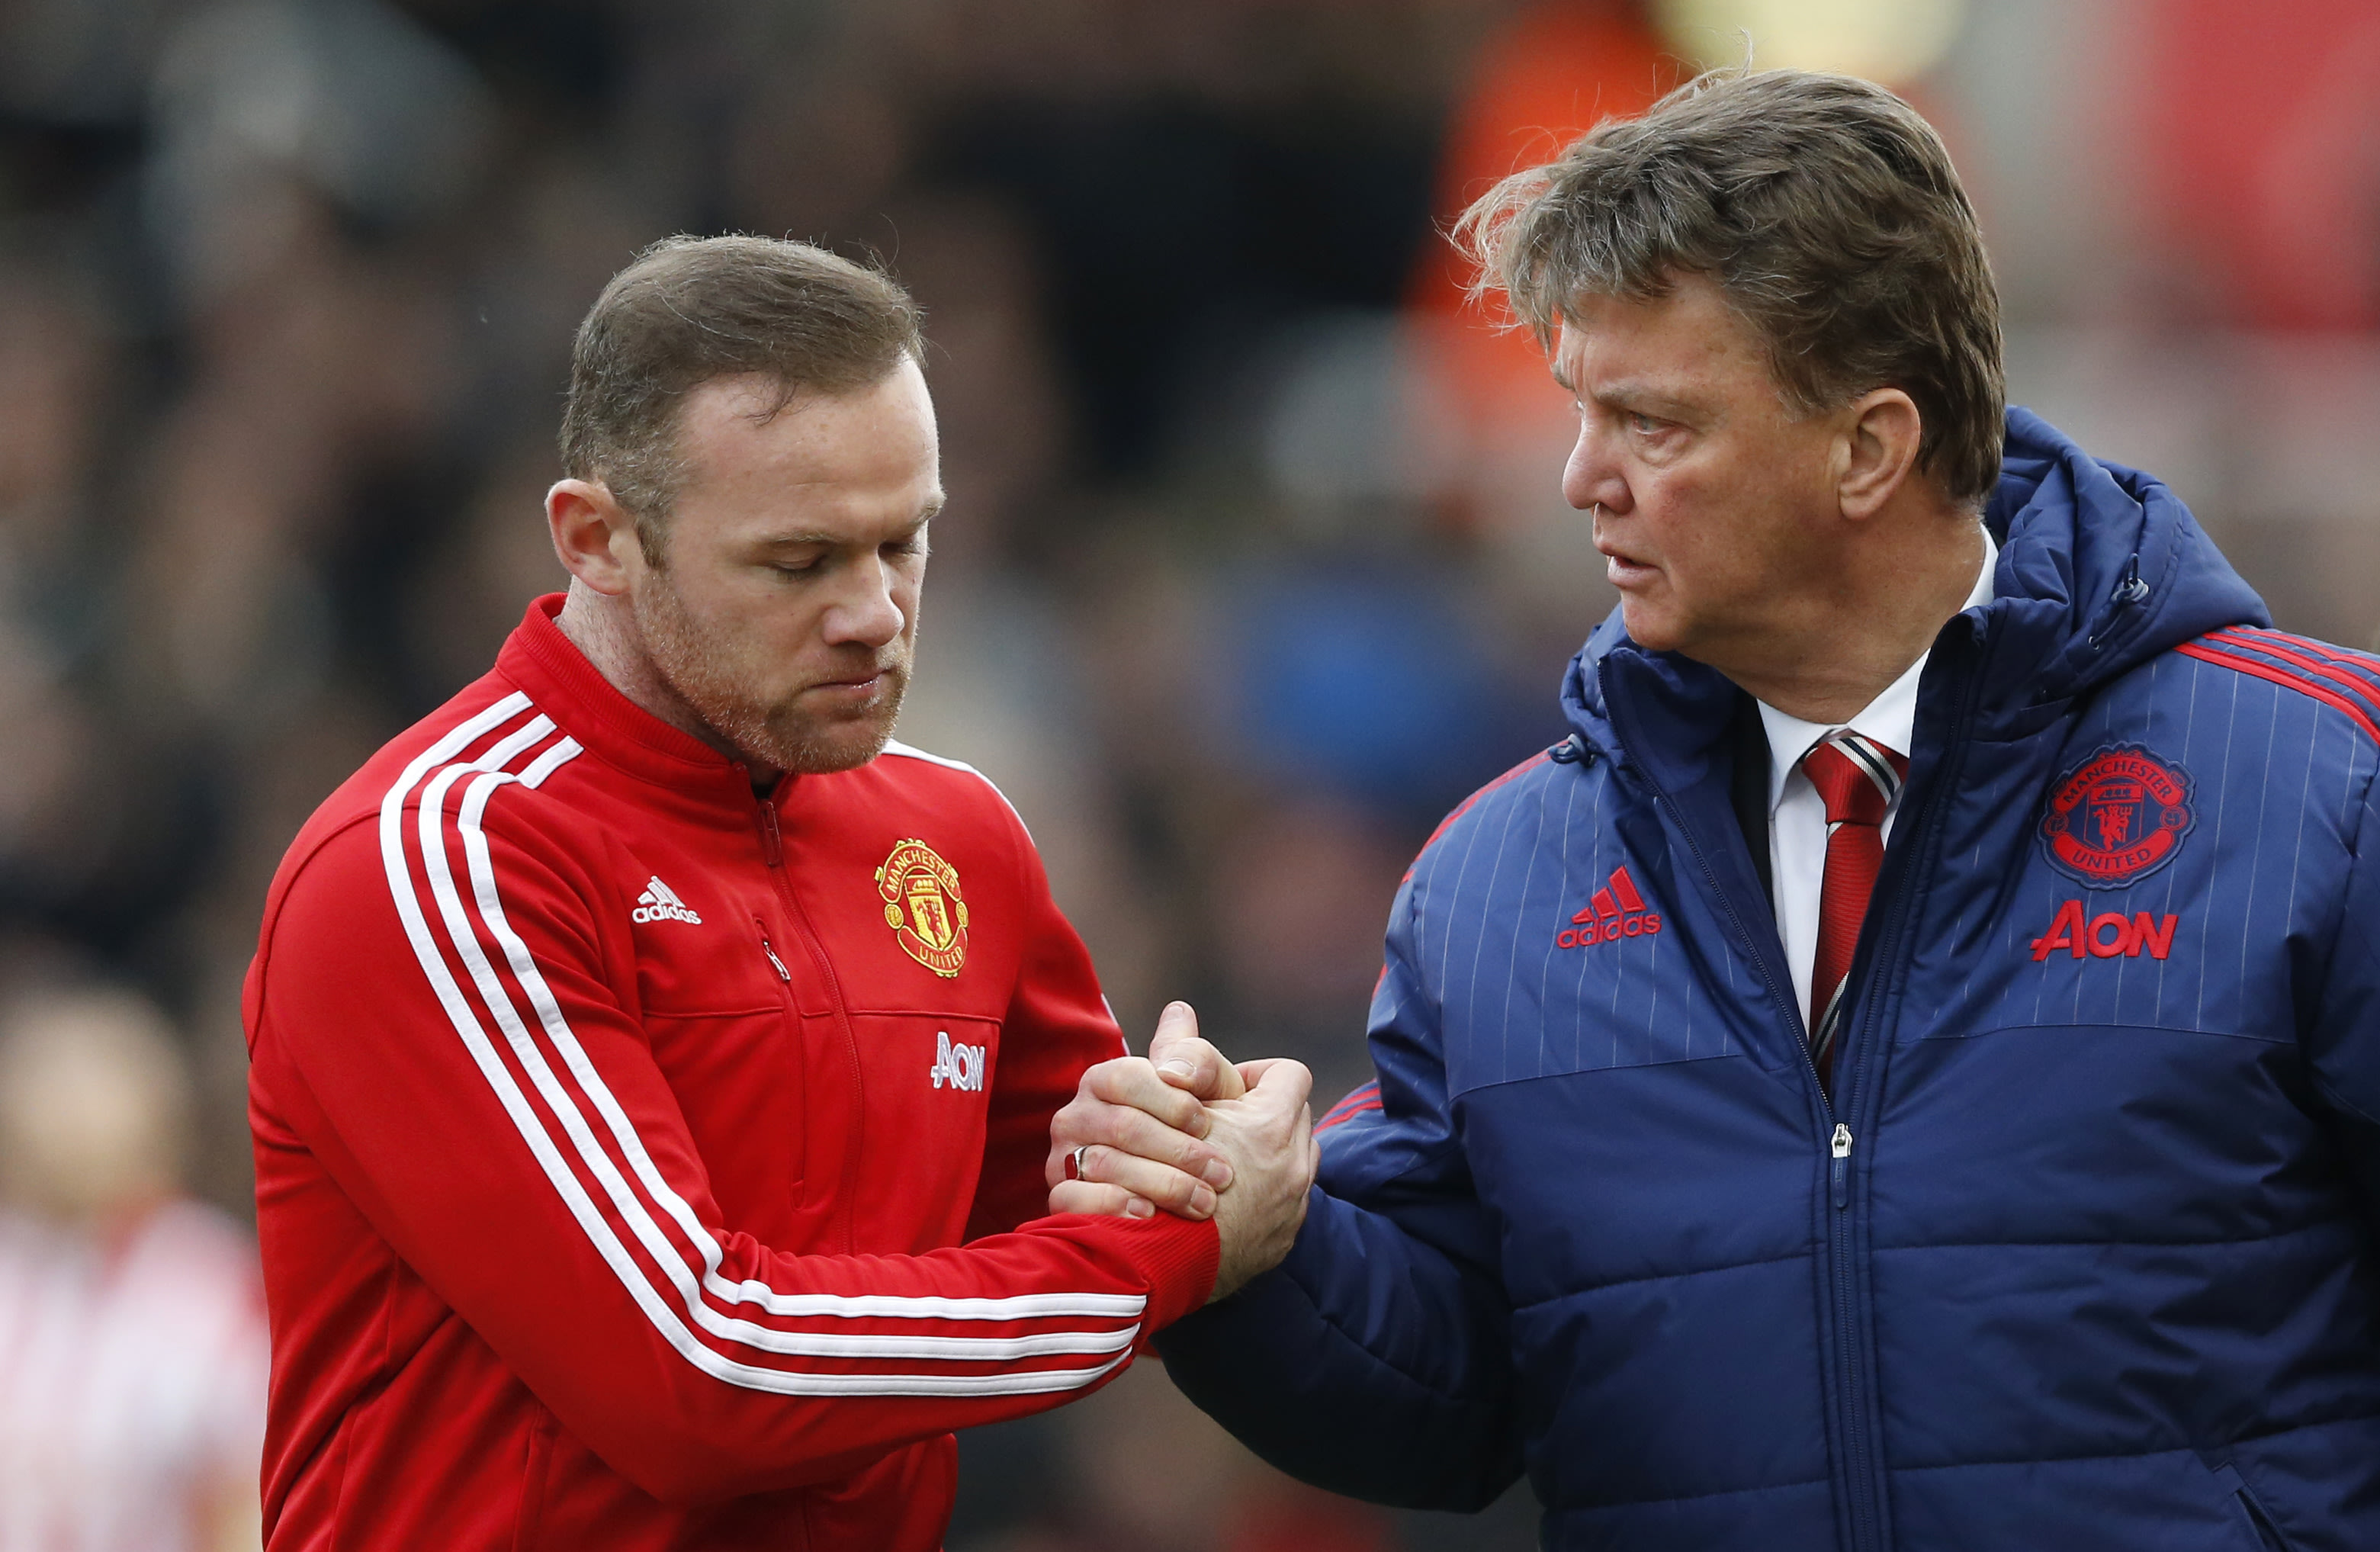 Wayne Rooney's leadership can help Louis van Gaal. (Reuters)